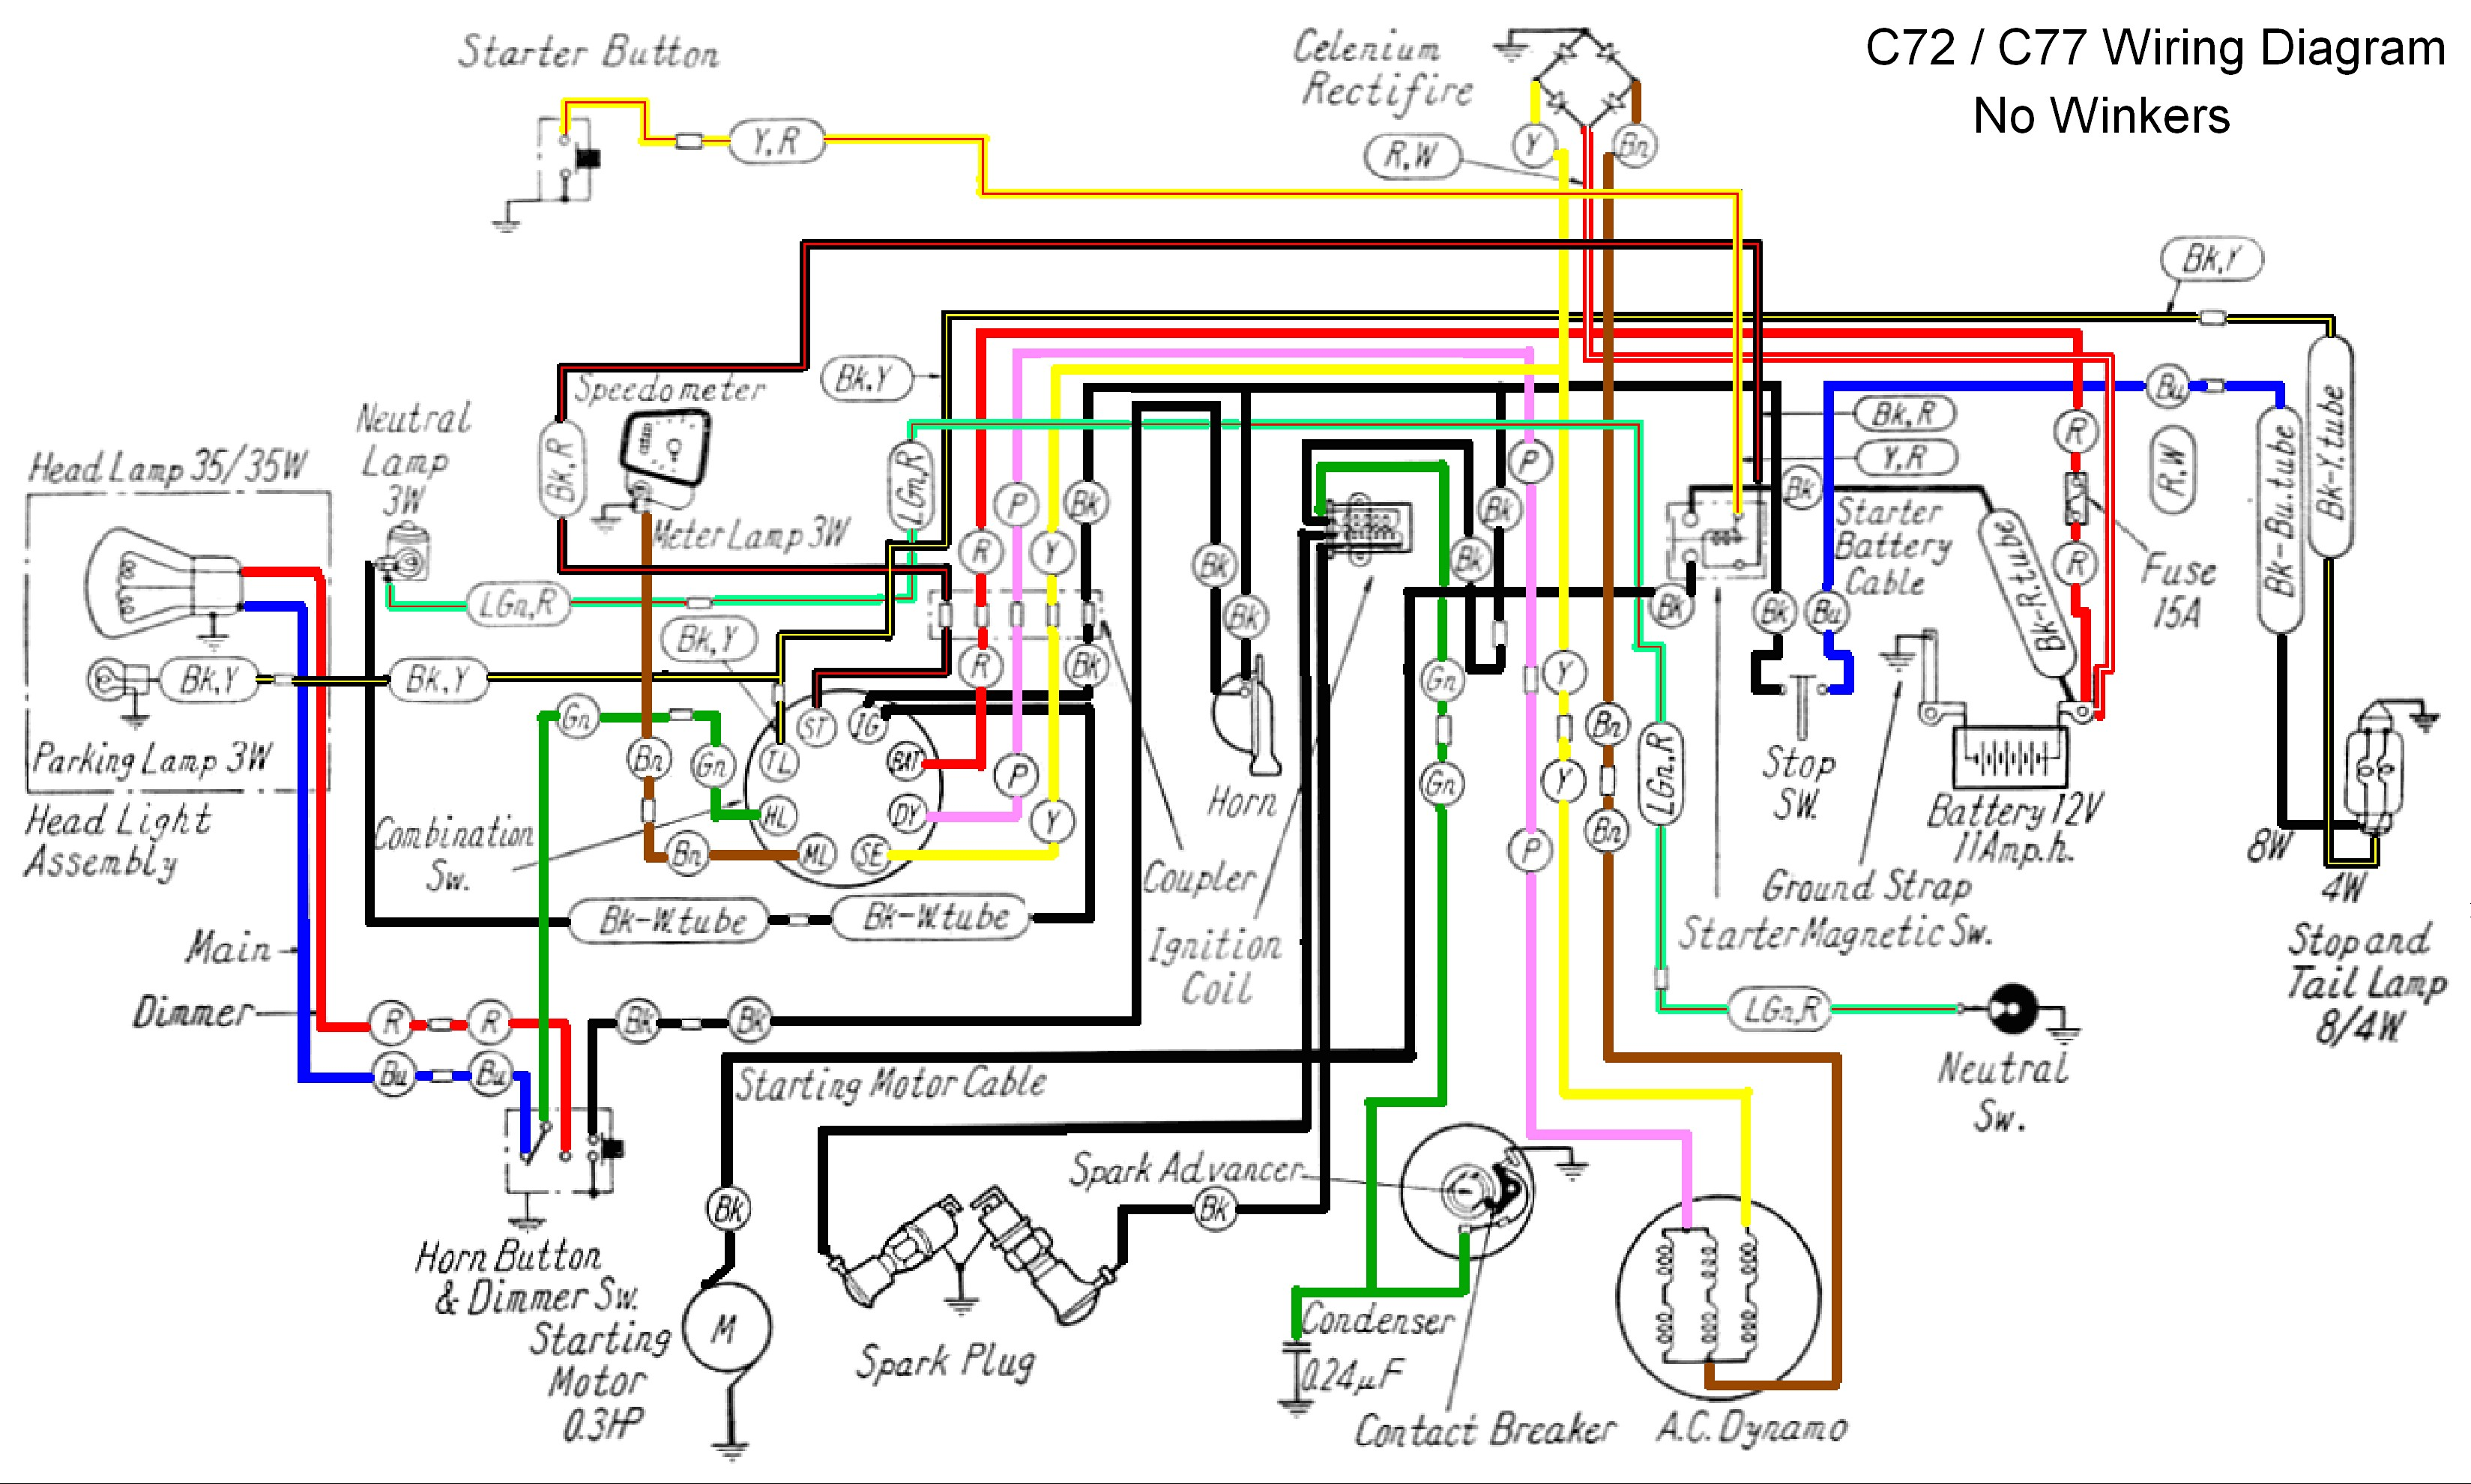 Wiring diagram likewise harley heated grips wiring diagram likewise wiring diagram on harley sportster wiring diagram likewise honda rh 66 42 71 199 swarovskicordoba Images